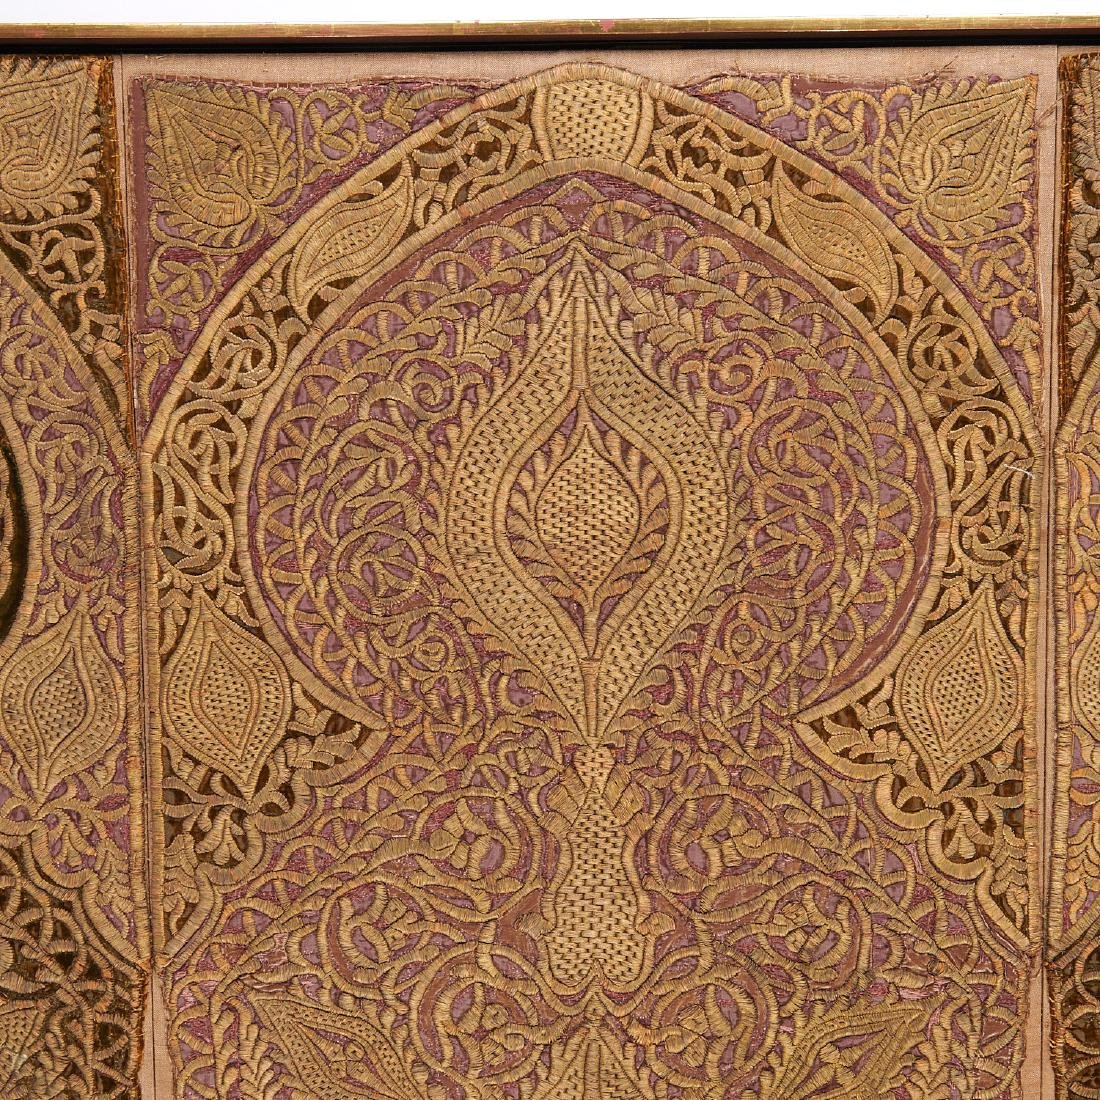 Large Mughal silk and metal threaded tapestry - 4